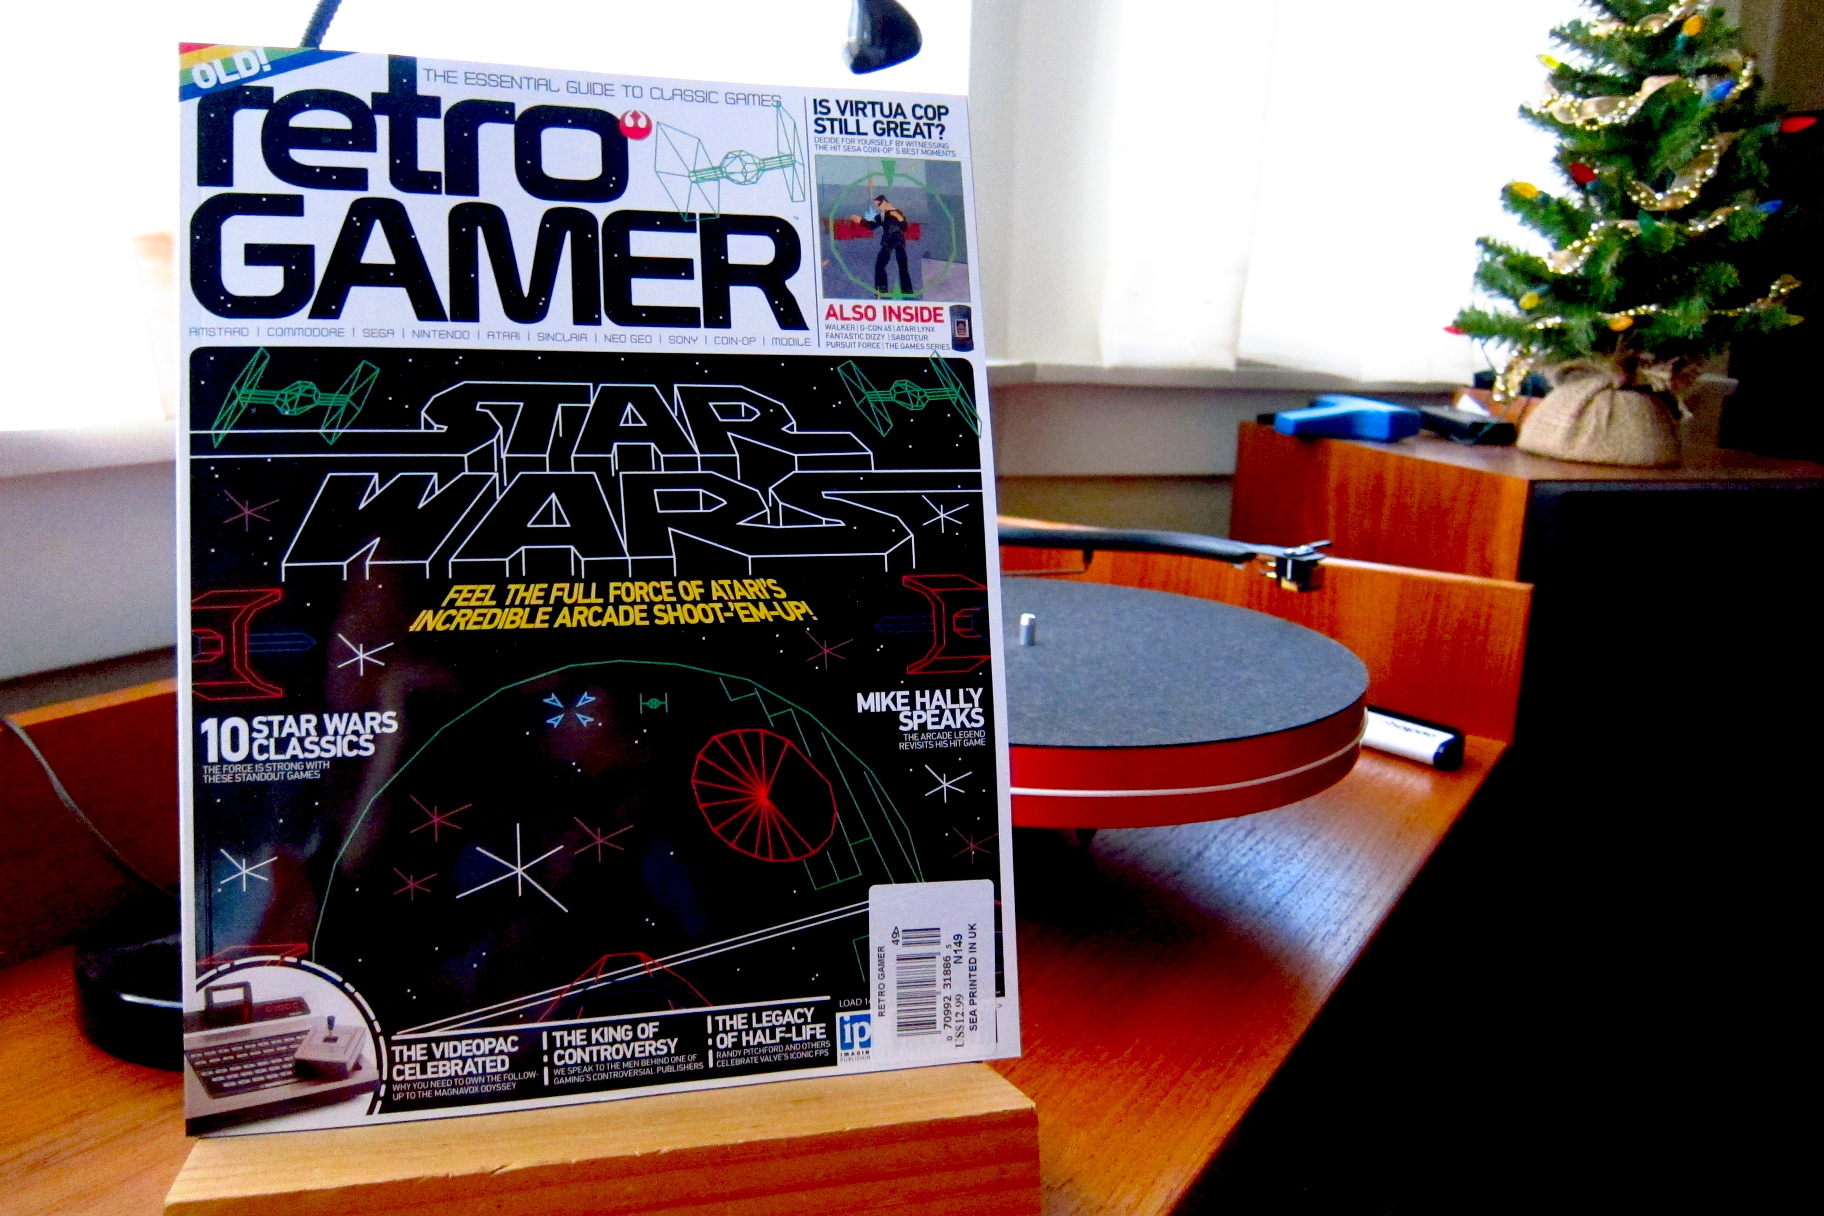 Classic Gaming Quarterly | Retro Gamer #149 makes it out for